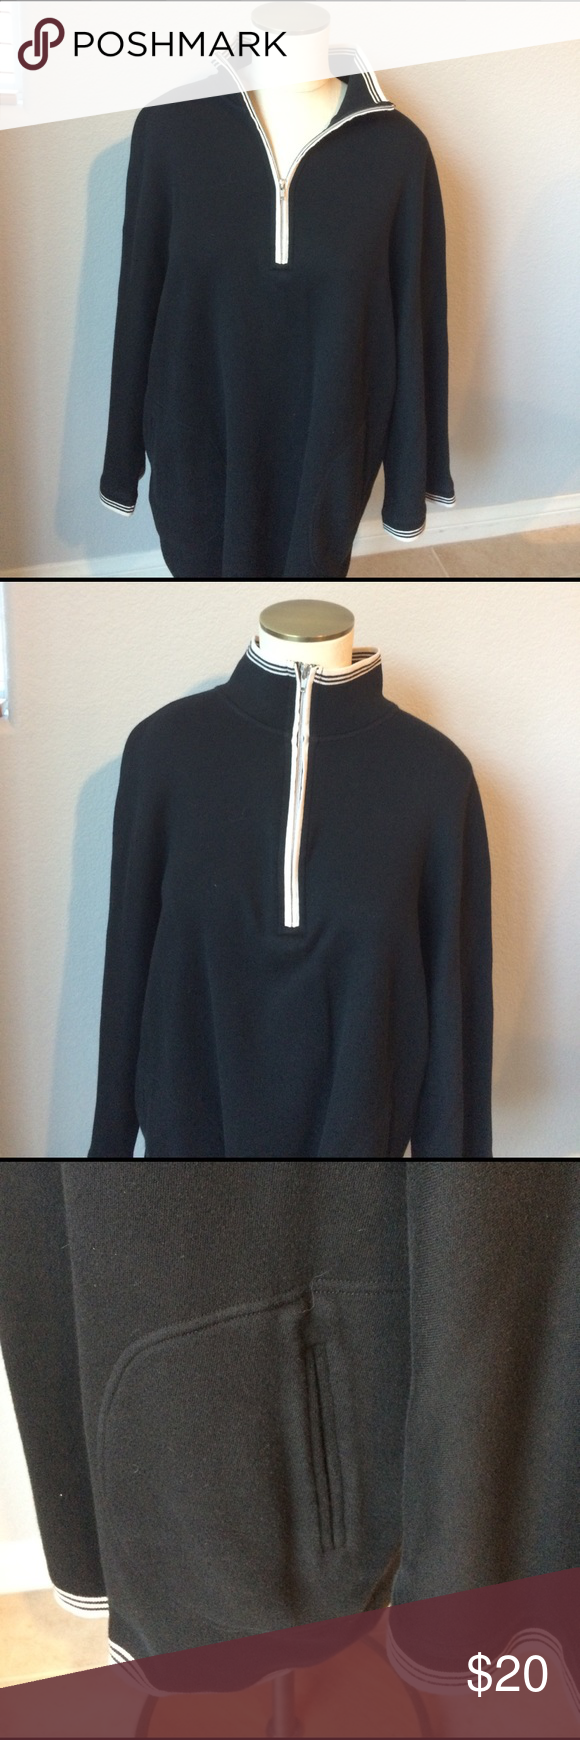 """Neiman Marcus Neiman Marcus dress sweatshirt. It is marked as a large but fits like an extra large. Pit to pit is 25"""". Length is 29"""" Neiman Marcus Tops Sweatshirts & Hoodies"""